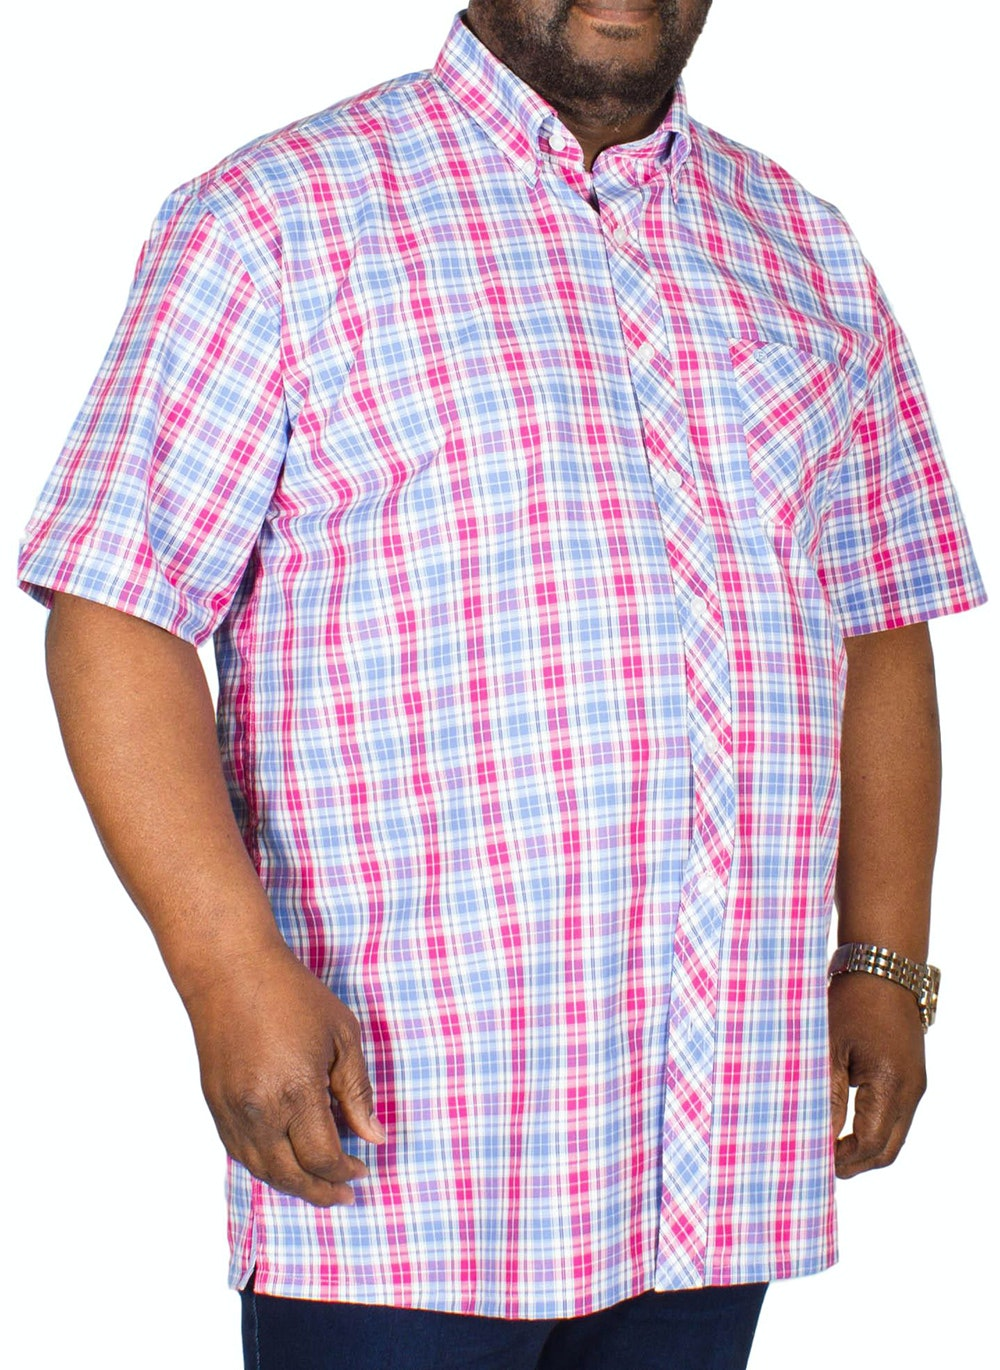 Espionage Short Sleeve Check Shirt Blue/Pink